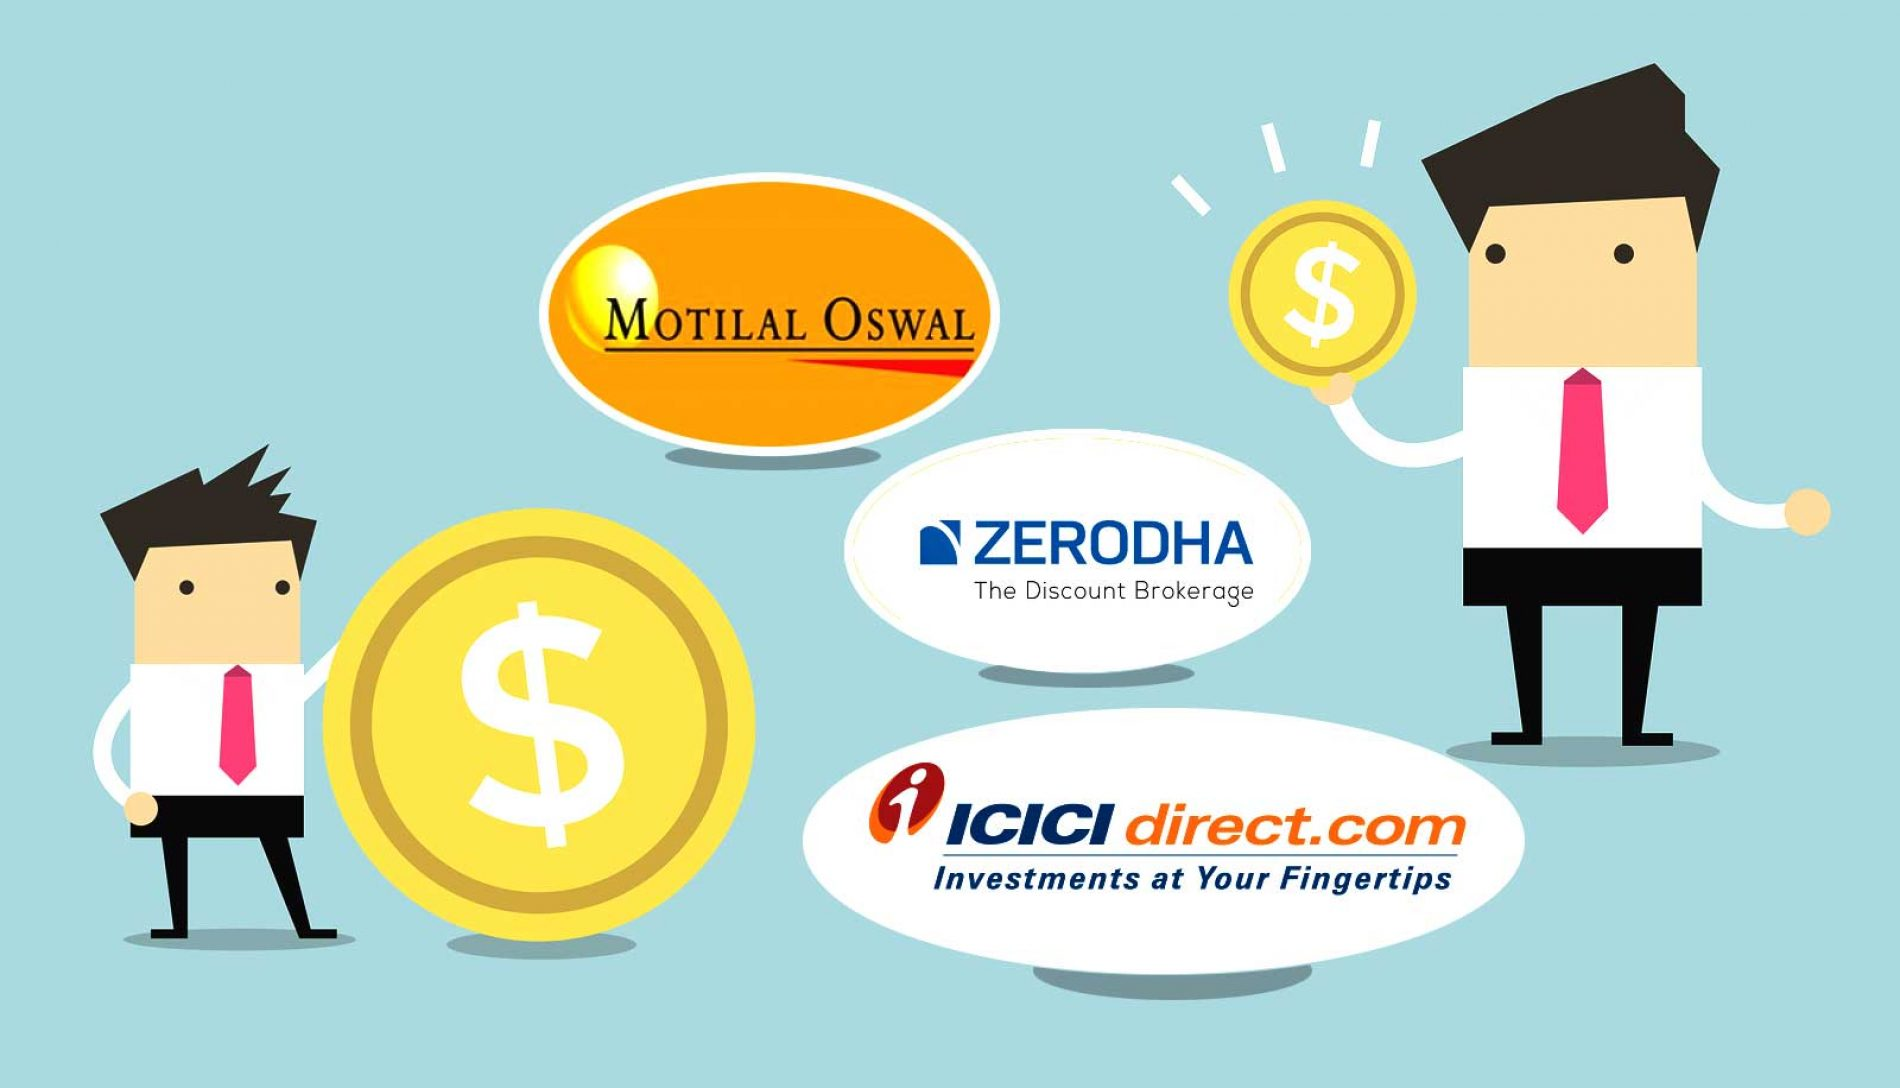 Compare Zerodha No.1 firm and Top 3 Brokerage Firms in India and here is the best one